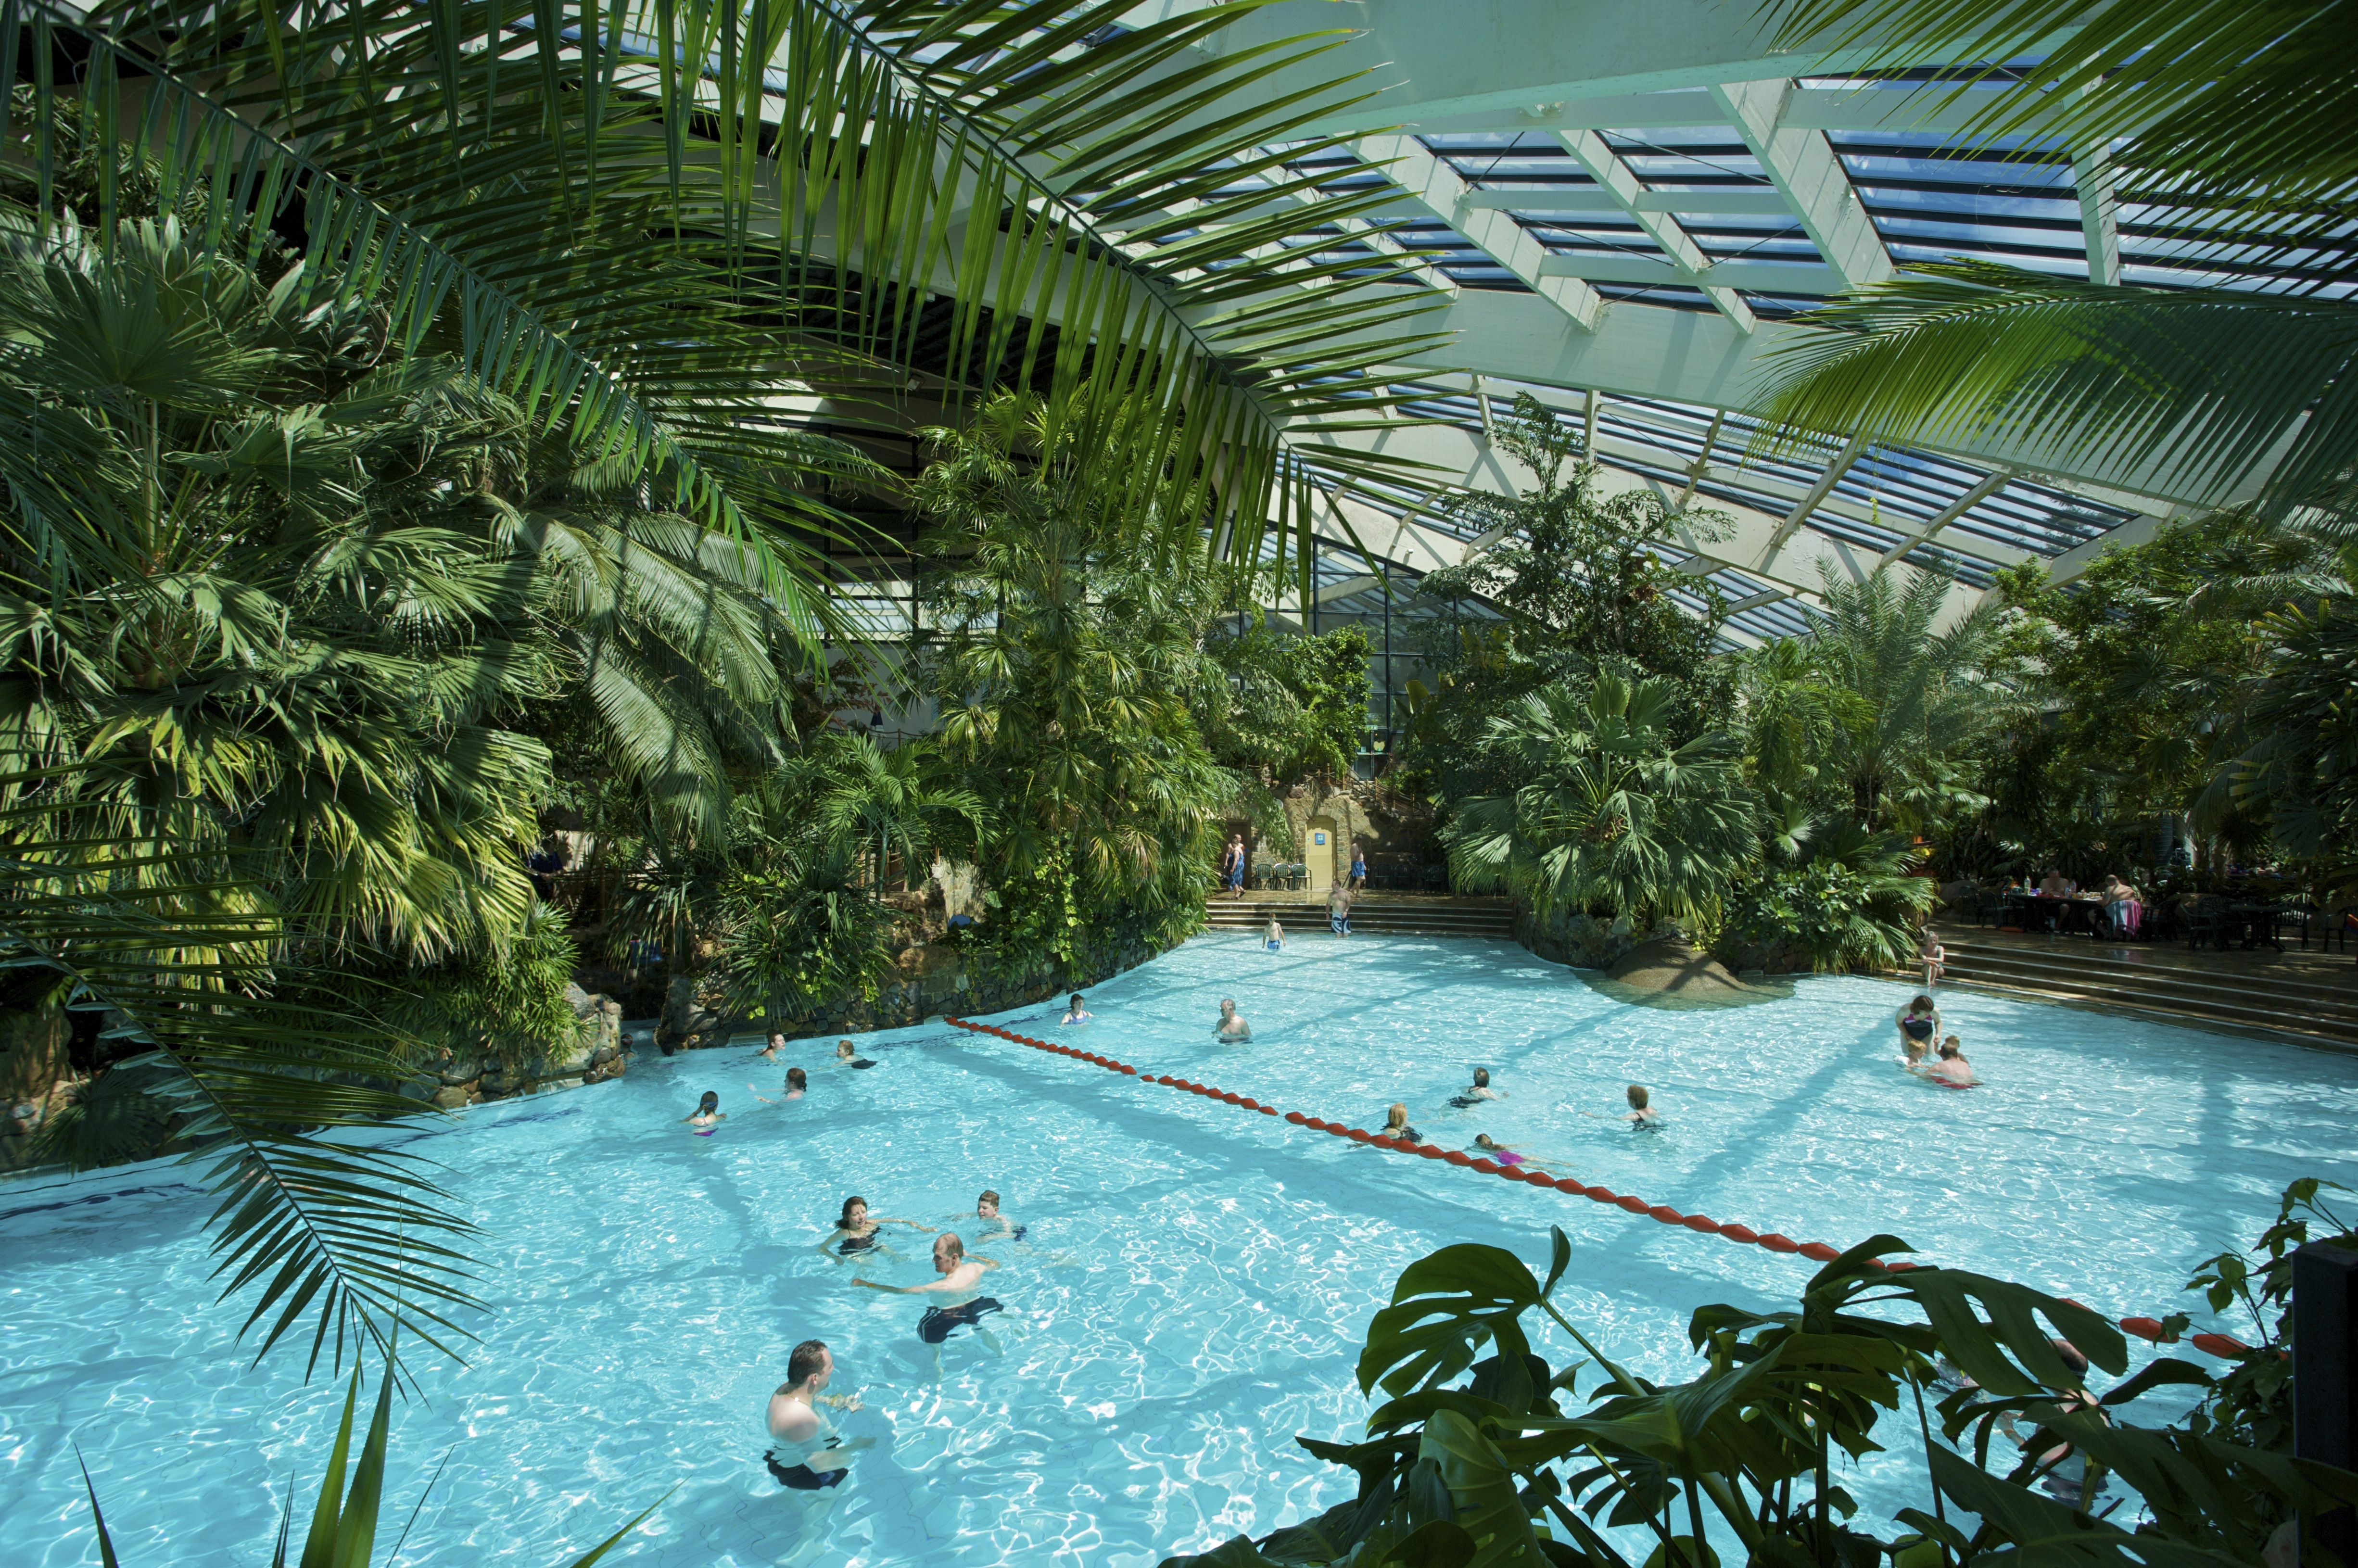 subtropical swimming paradise center parcs longleat forest centerparcs pinterest center